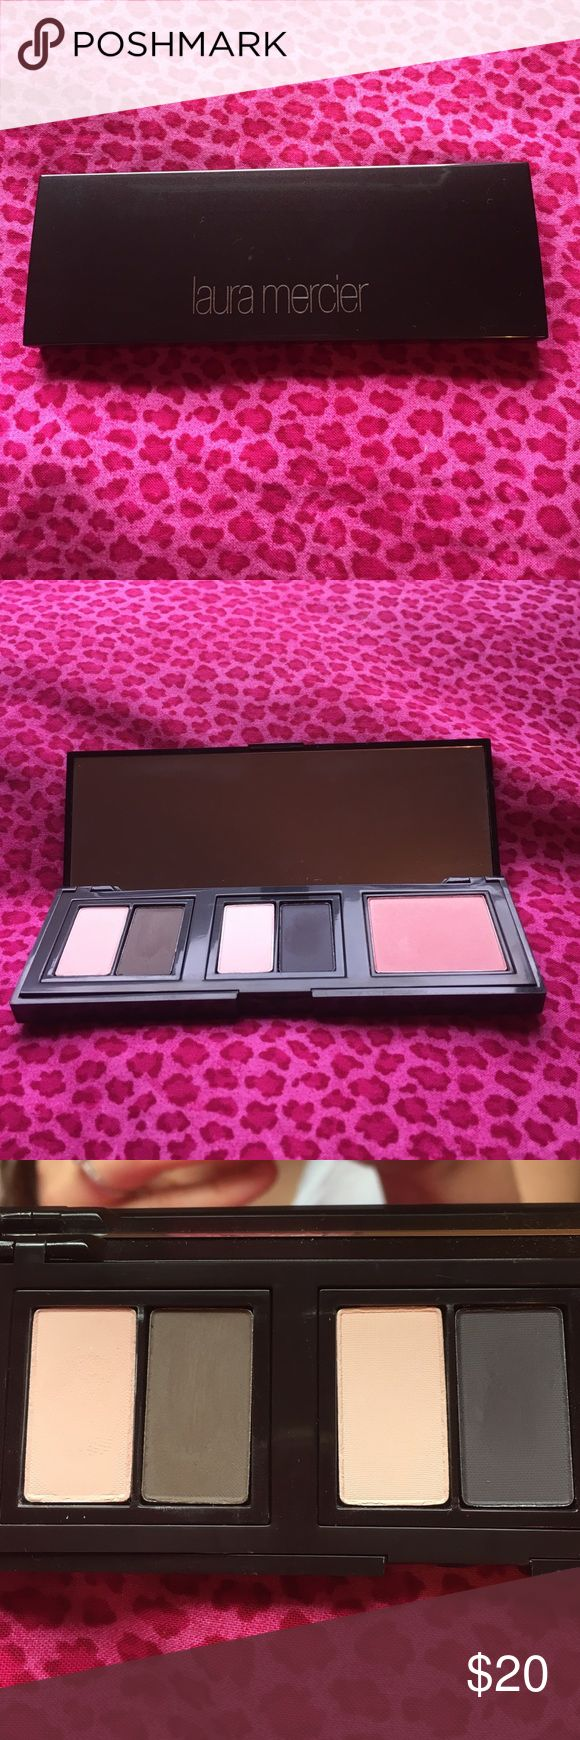 Laura Mercier Eyeshadow and Blush Pallete Only used for sampling. Feel free to make an offer. :) laura Mercier Makeup Eyeshadow